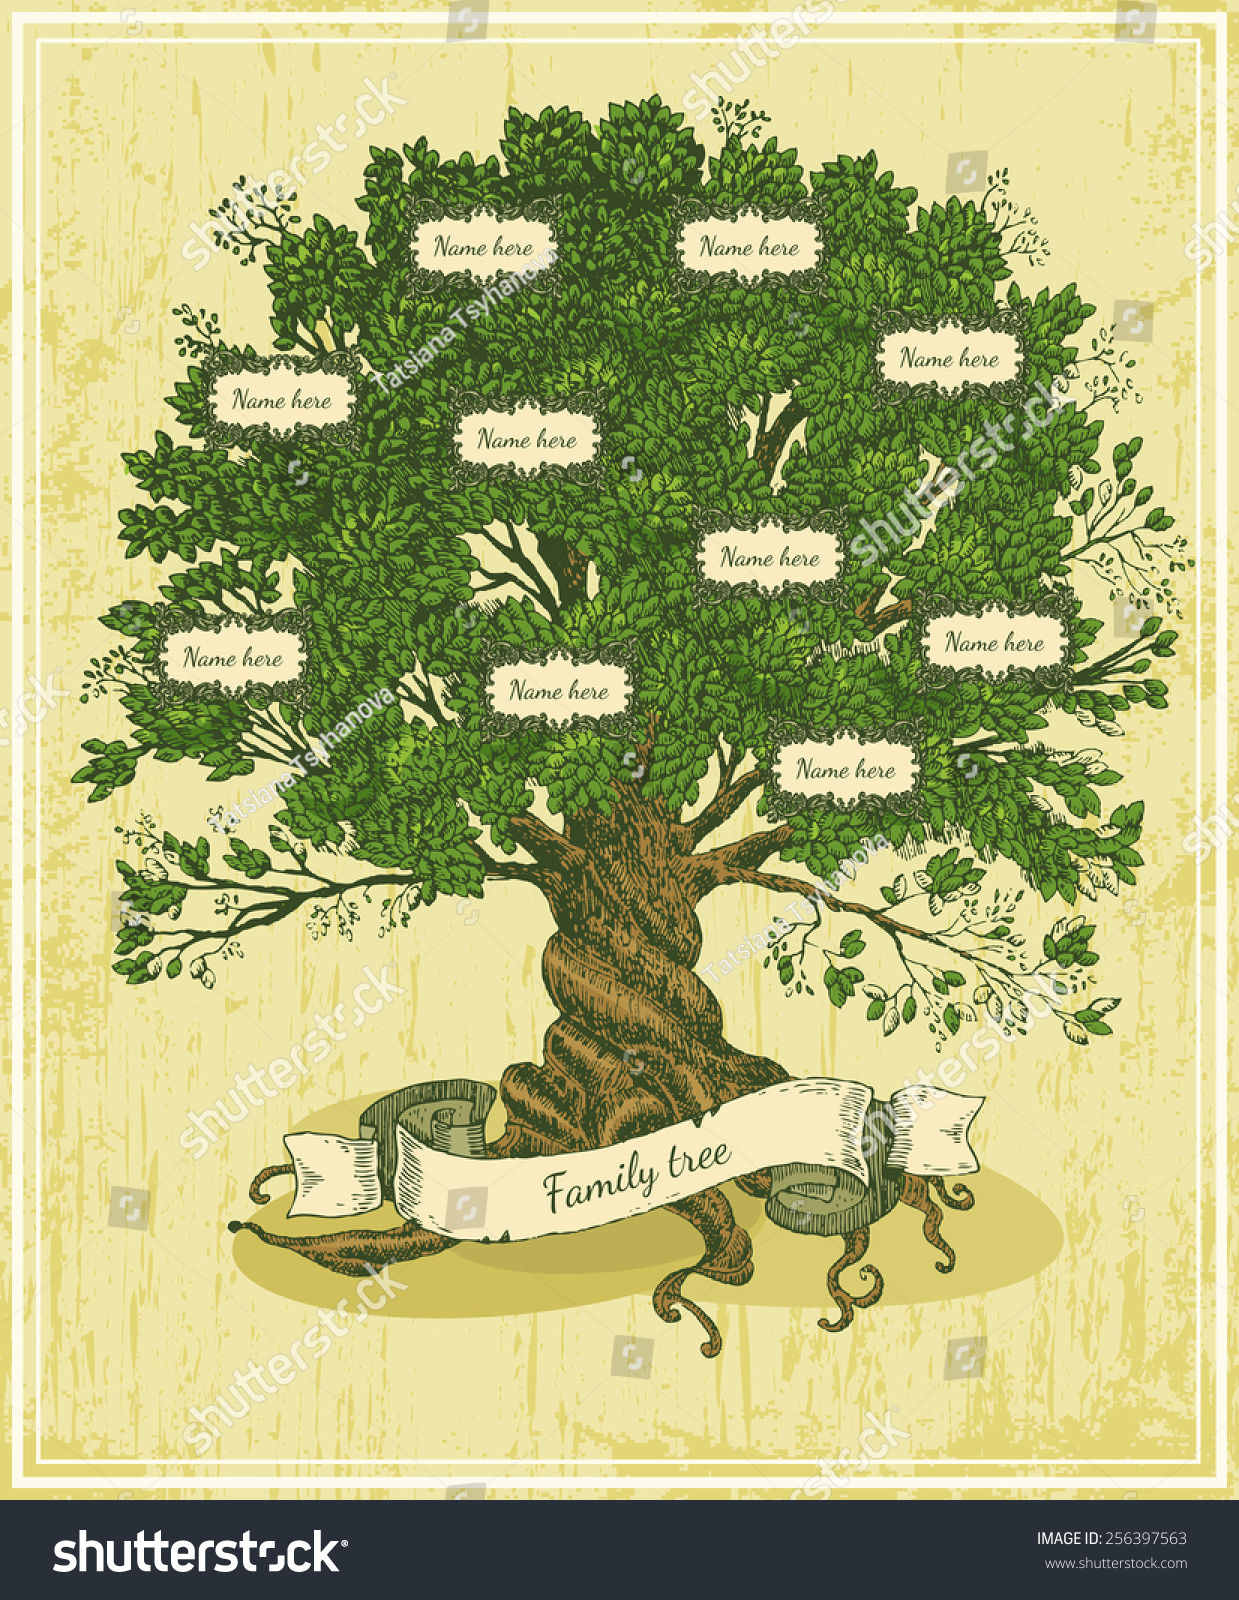 Genealogical tree on old paper background stock vector - Family tree desktop wallpaper ...